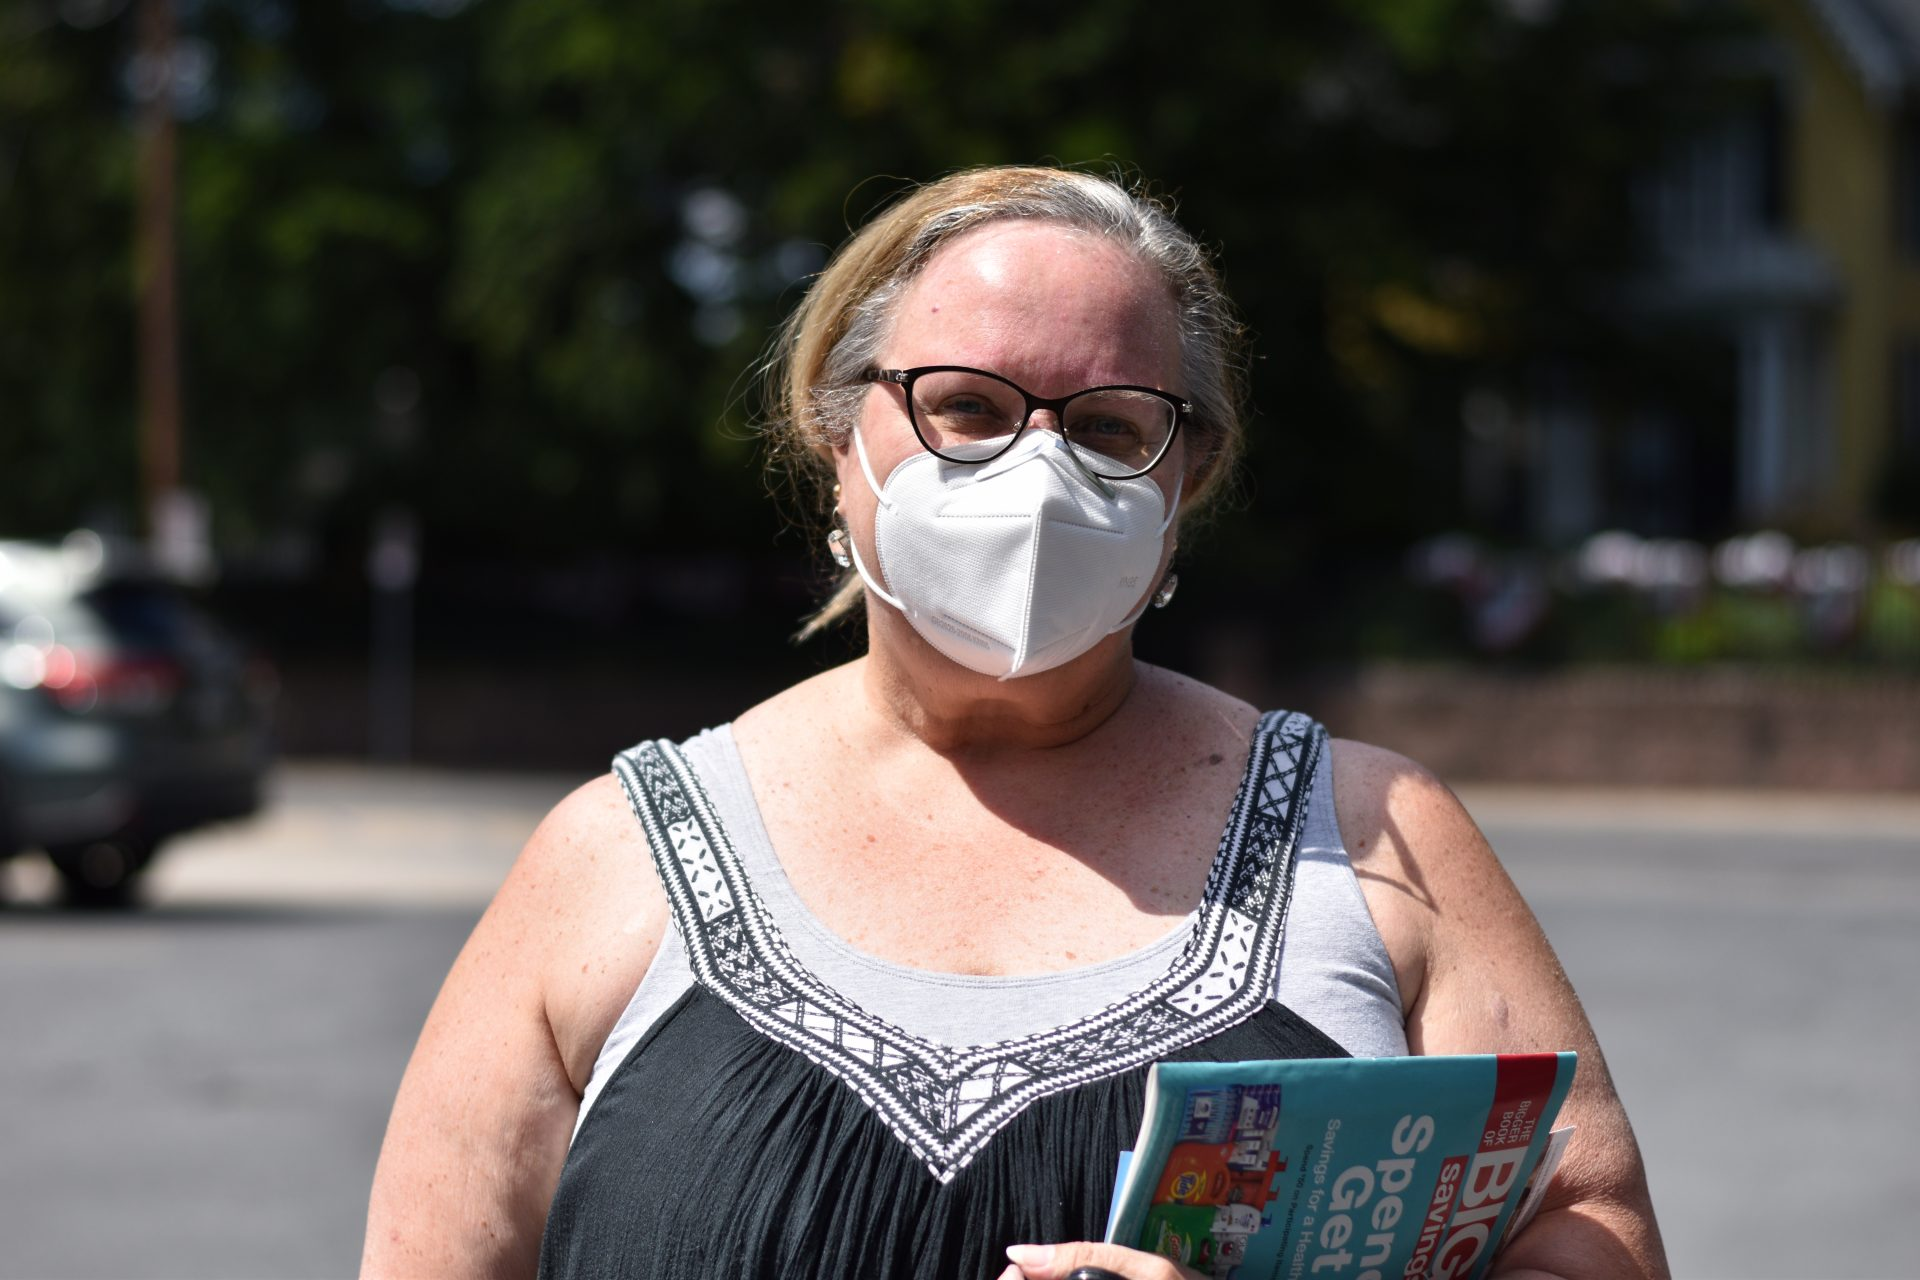 Danette Wiles of Chambersburg wears a KN95 mask when she goes to the post office to get her mail.